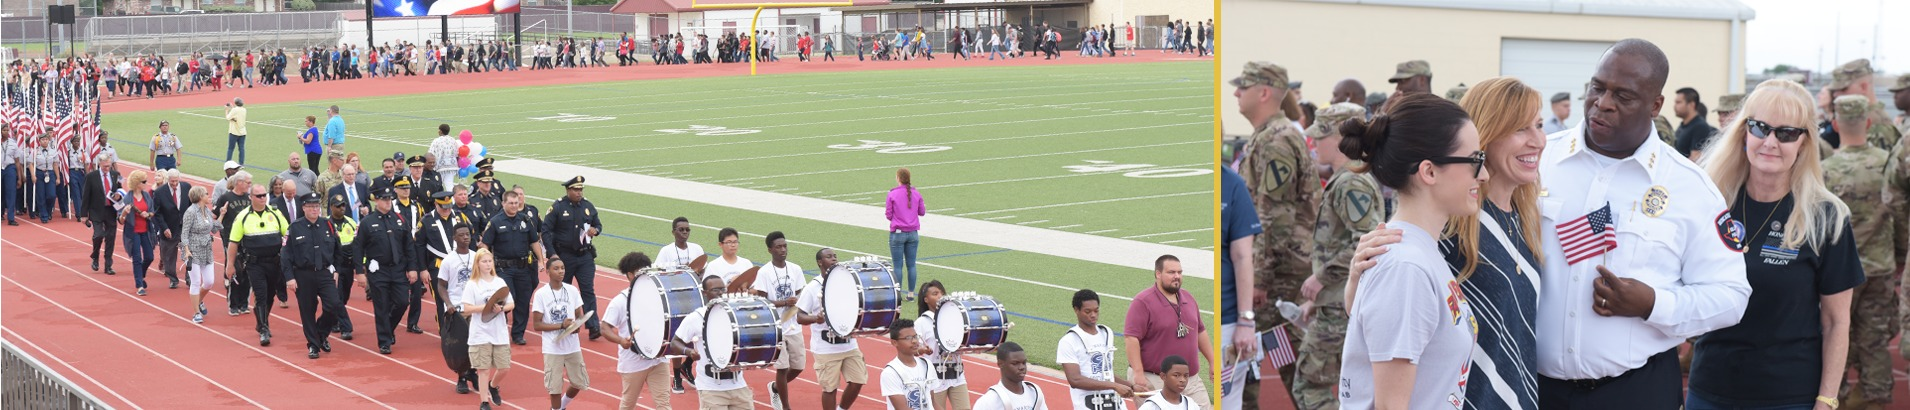 Community members during the 2018 Killeen ISD Freedom Walk hosted at Killeen High School, Leo Buckley Stadium.